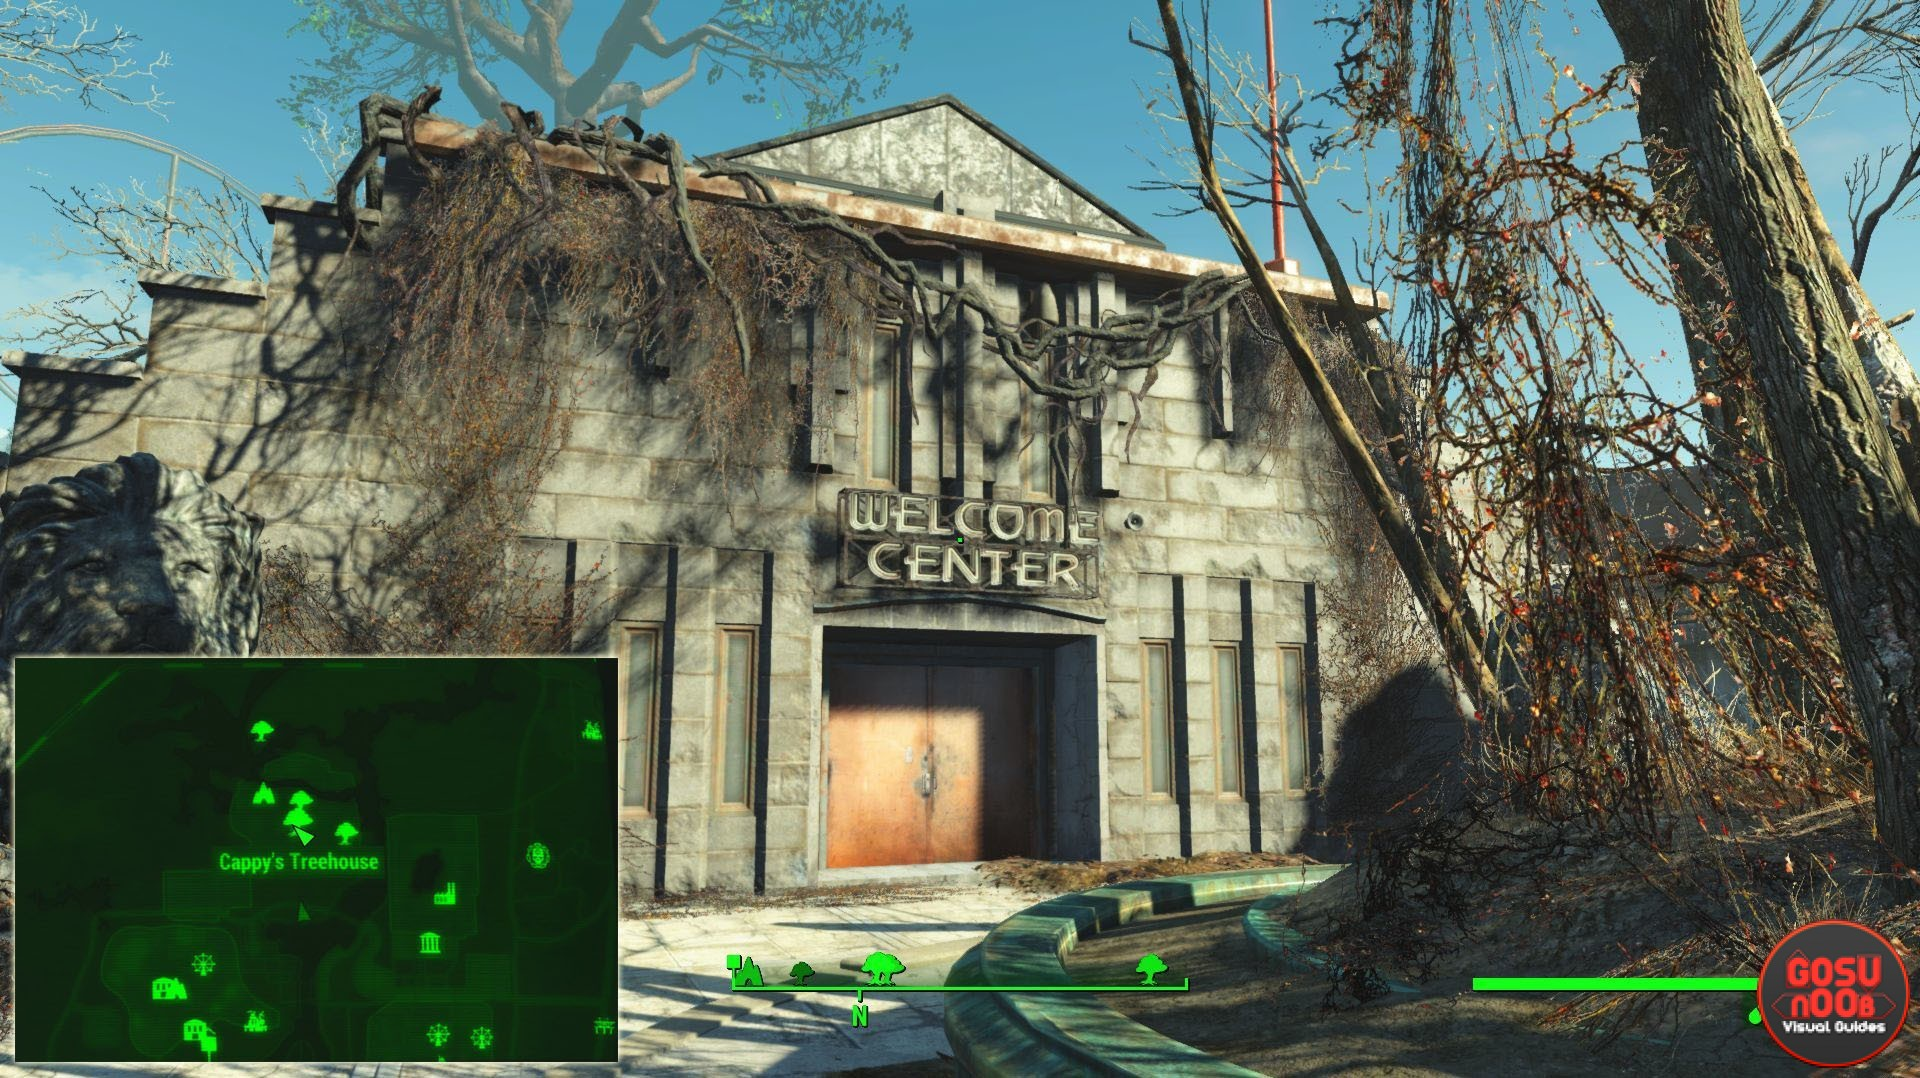 How To Beat Safari Adventure In Fallout 4 | Tom's Hardware Forum